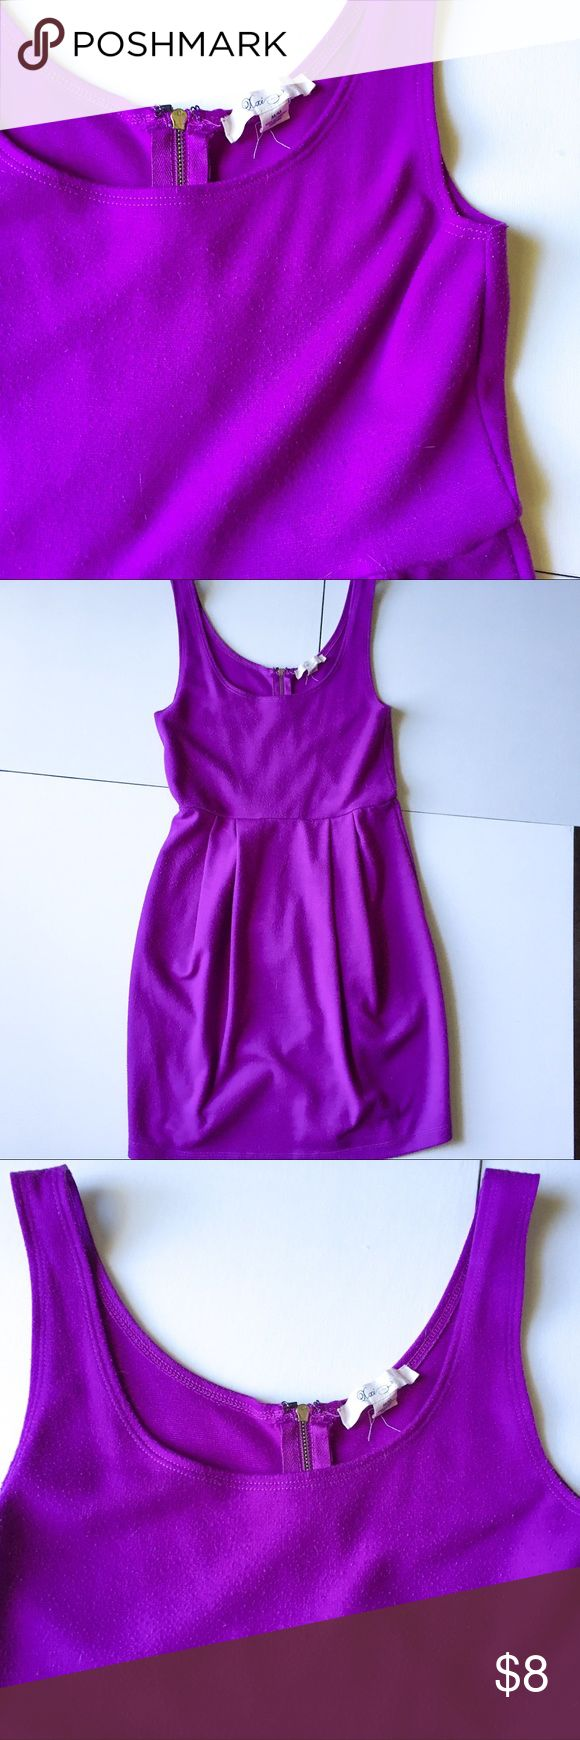 """Forever 21 purple pleated scoop neck dress Used condition solid purple pleated scoop neck dress • exposed gold zipper detail in back • elastic waist allows stretch • significant all over pilling • one small pick in fabric on back skirt • length 32"""" waist 12.5"""" bust 14"""" • 67% polyester 30% Rayon 3% spandex • hand wash cold • dry flat • 2018 Pantone color of the year! Forever 21 Dresses Mini"""